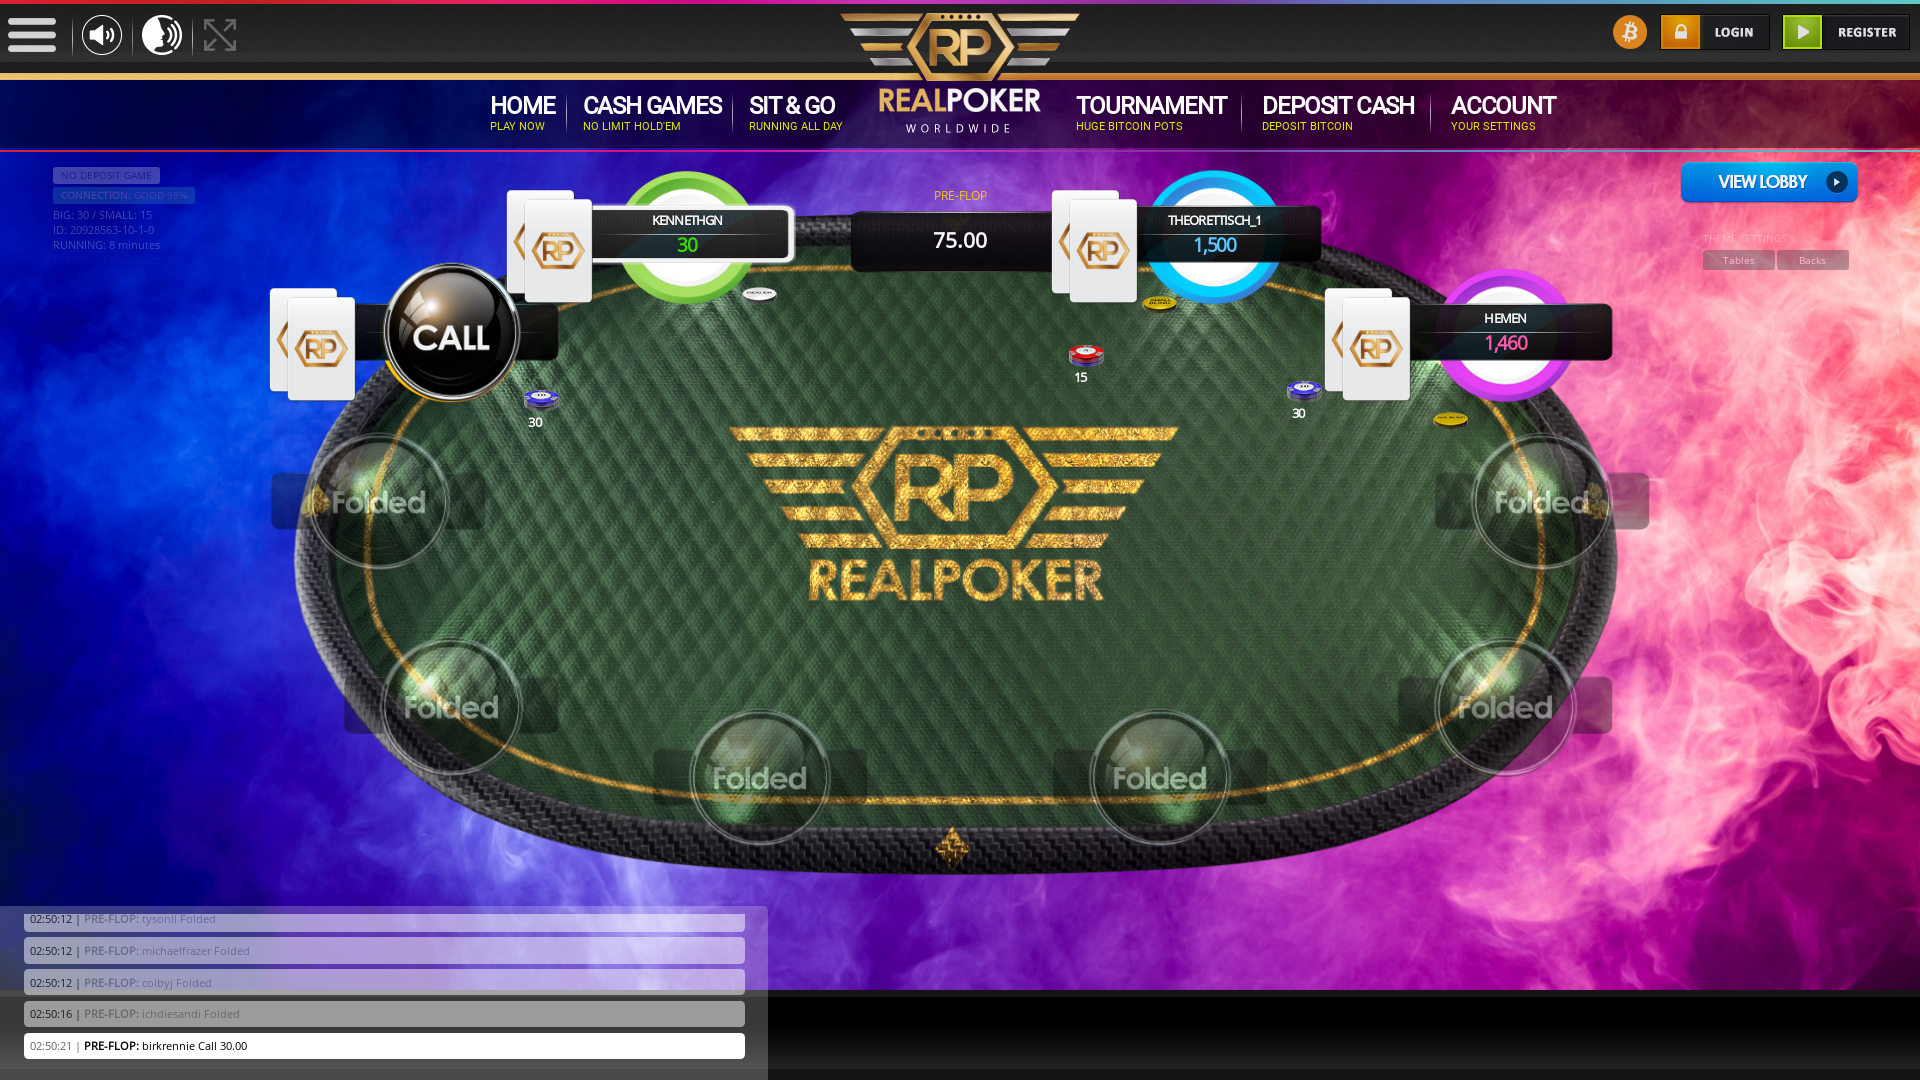 Spain Casino Bitcoin Poker from August